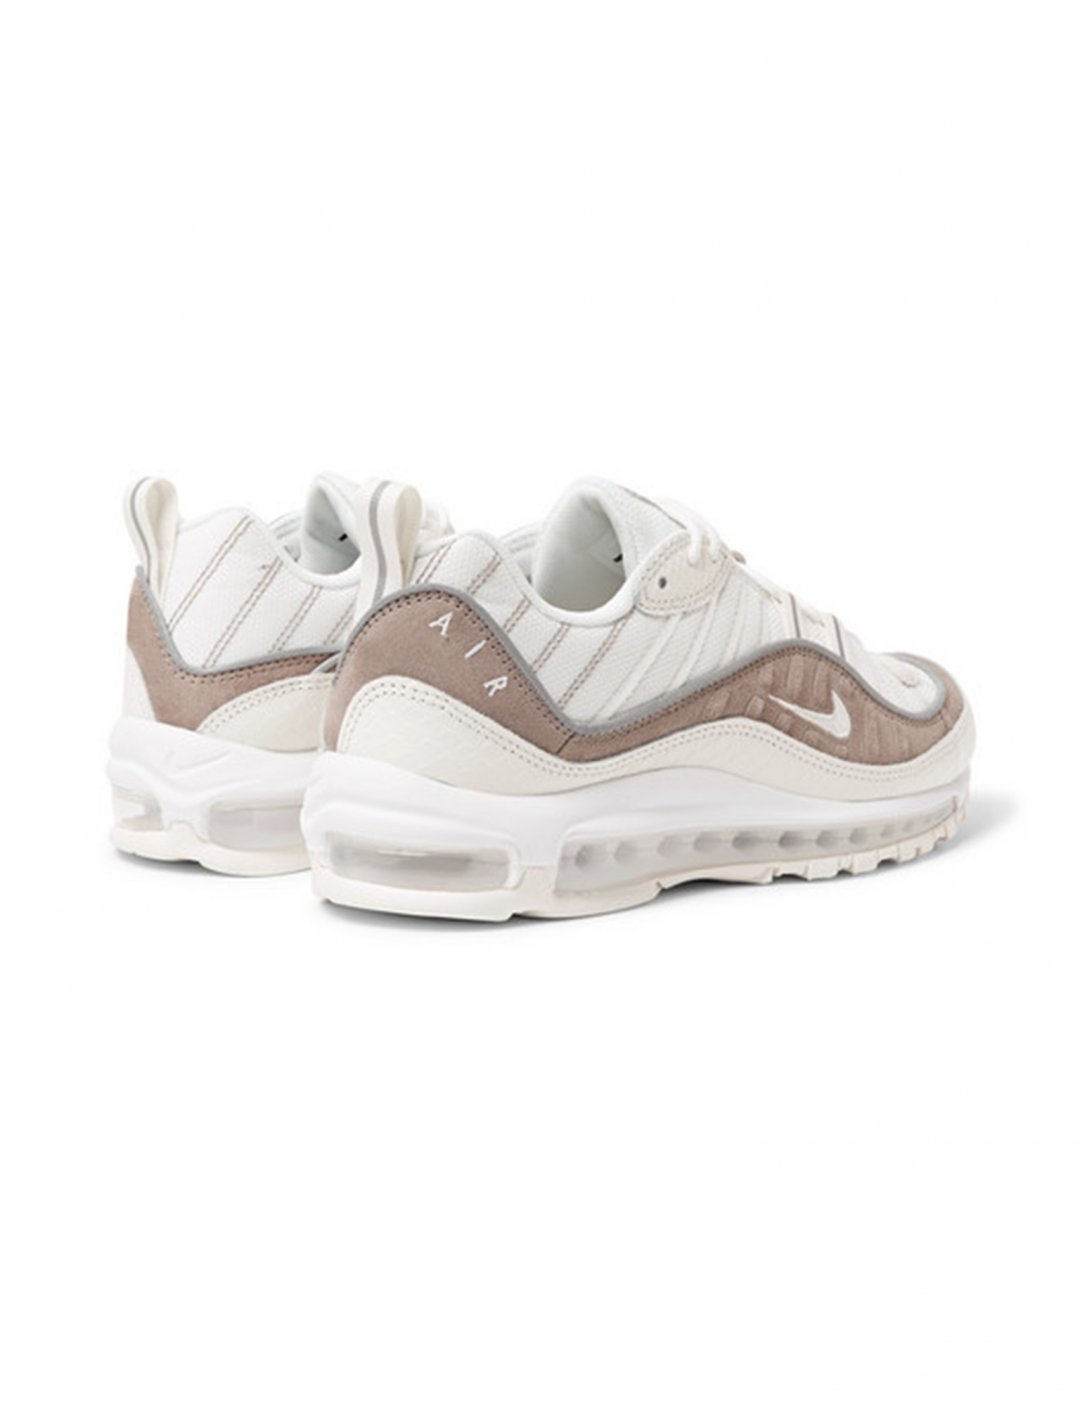 "Nike Air Max 98 Sneakers {""id"":12,""product_section_id"":1,""name"":""Shoes"",""order"":12} Nike"